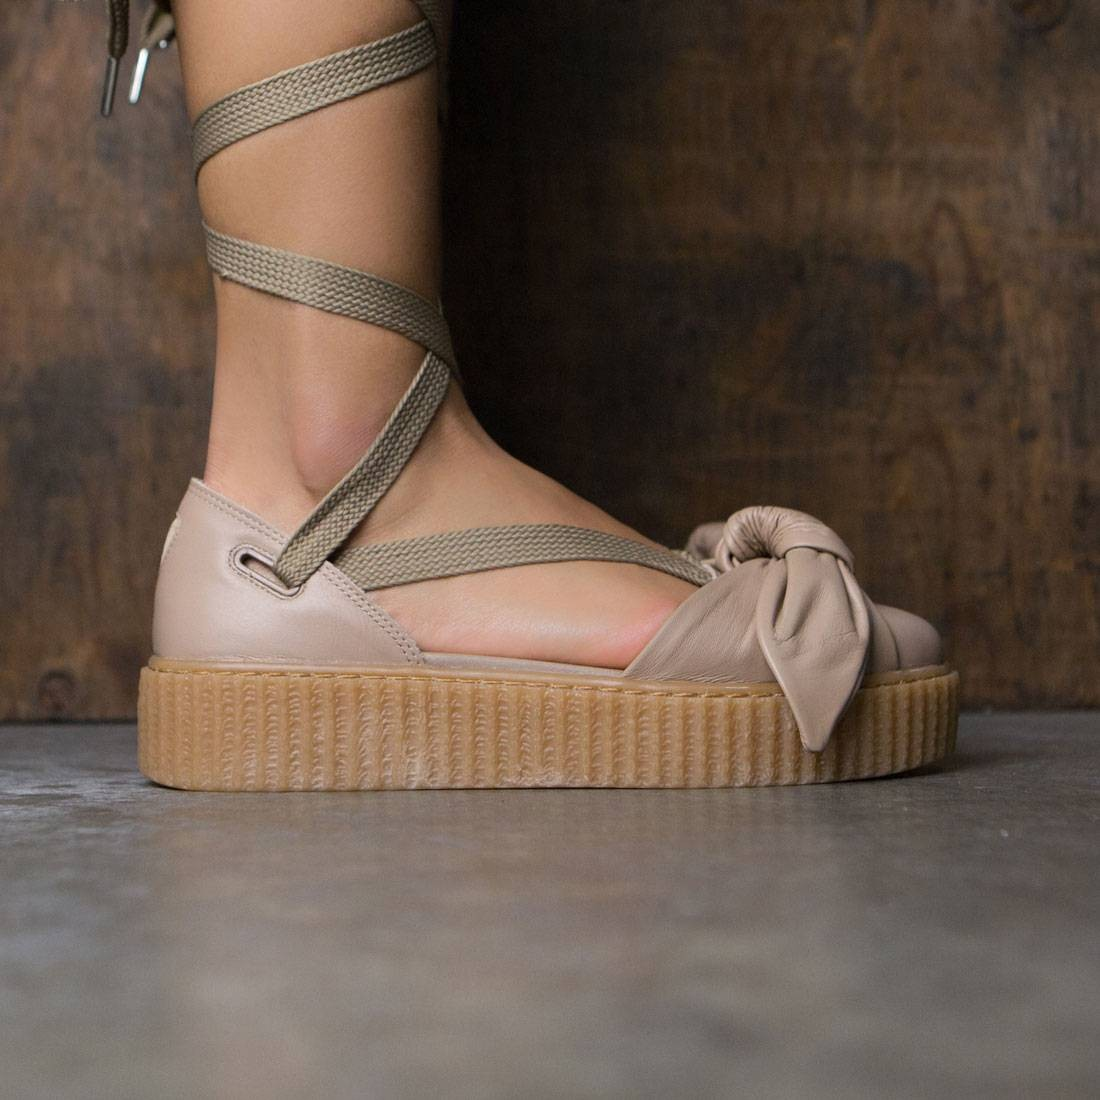 competitive price 0015f 3f3c3 Puma x Fenty By Rihanna Women Bow Creeper Sandal (natural / oatmeal)